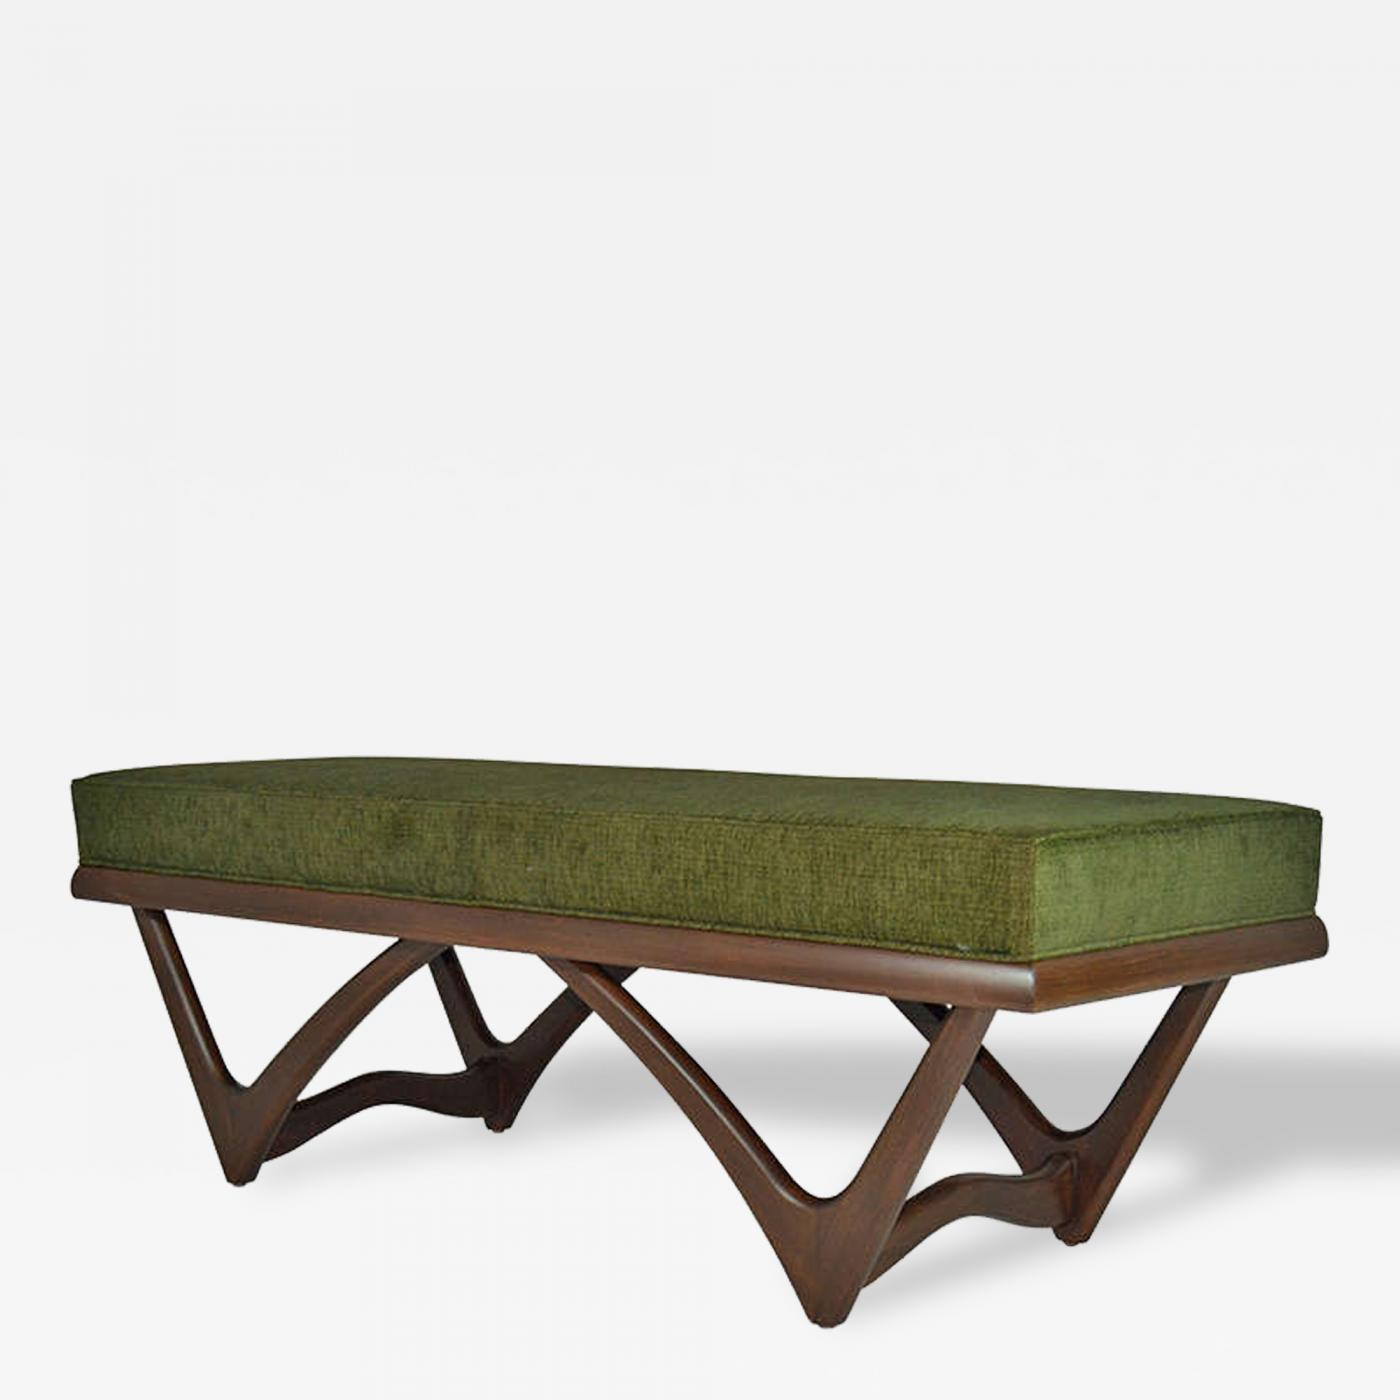 Sculptural Bench in the Style of Adrian Pearsall